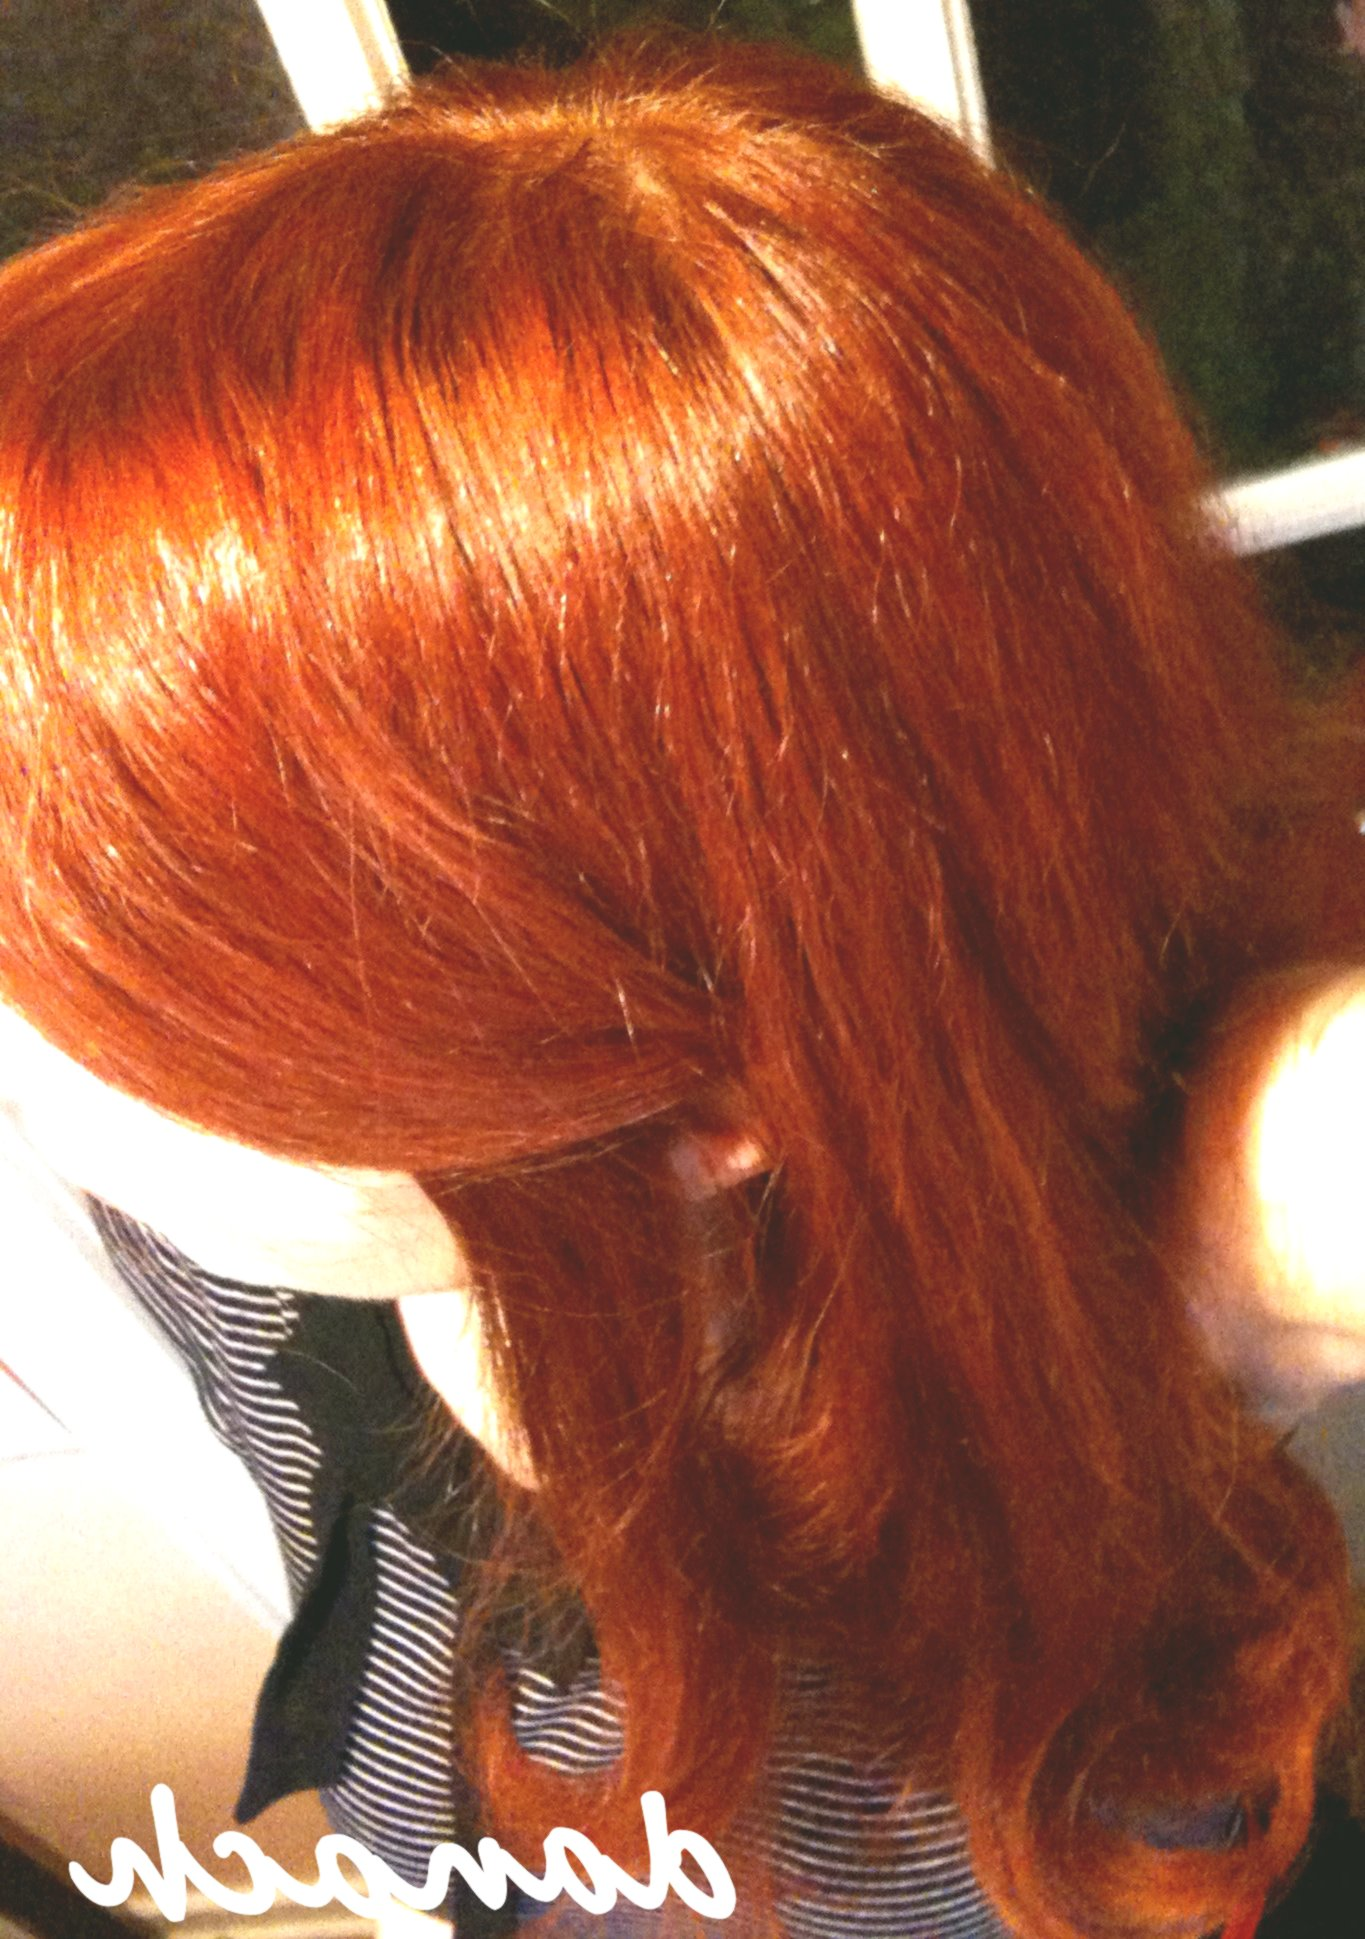 fancy hair color brown without redstitch gallery-New Haircolor Brown Without reddish architecture